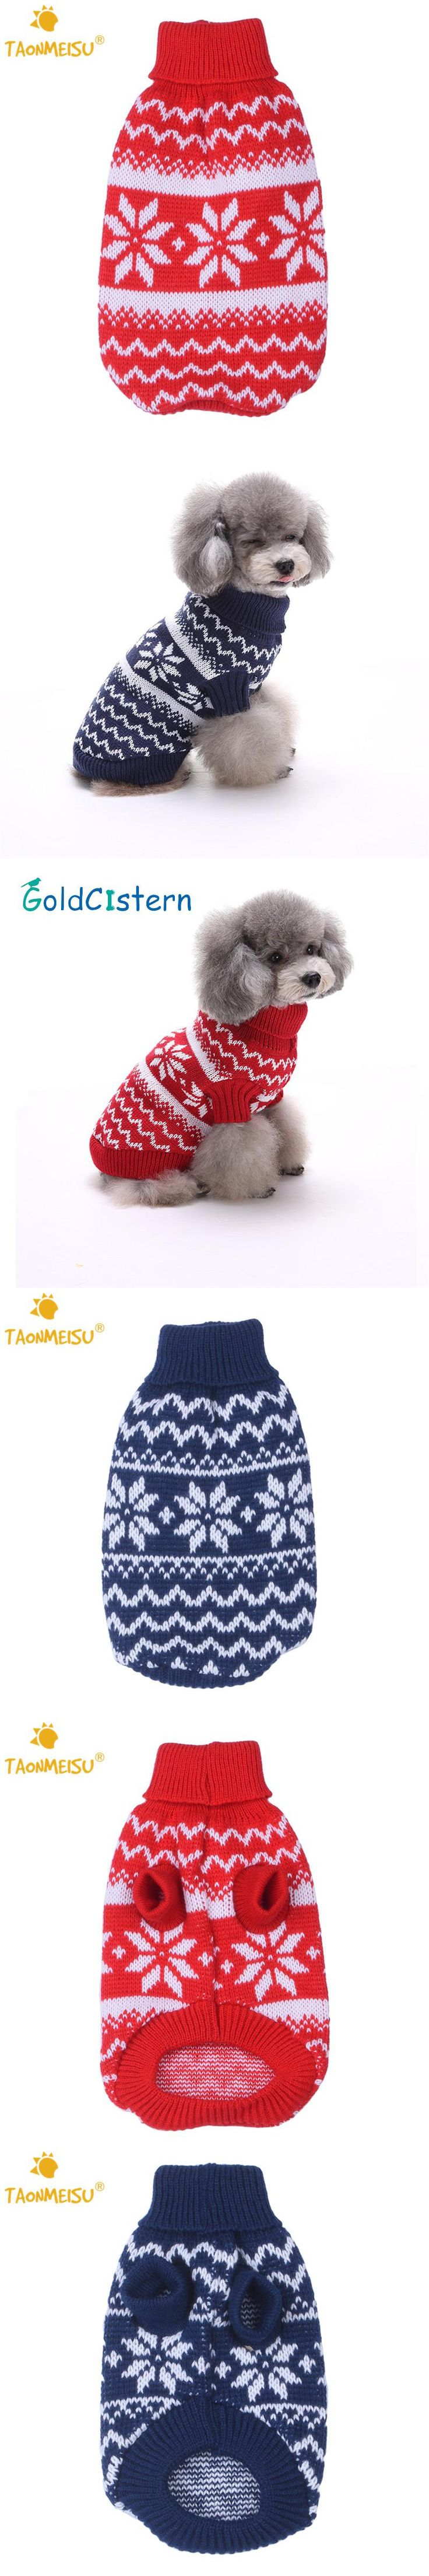 Best 25 dog christmas sweaters ideas on pinterest dog christmas pet dog cat warm clothes dog christmas sweaters snow fashion festive apparel coat puppy kitten clothes bankloansurffo Images